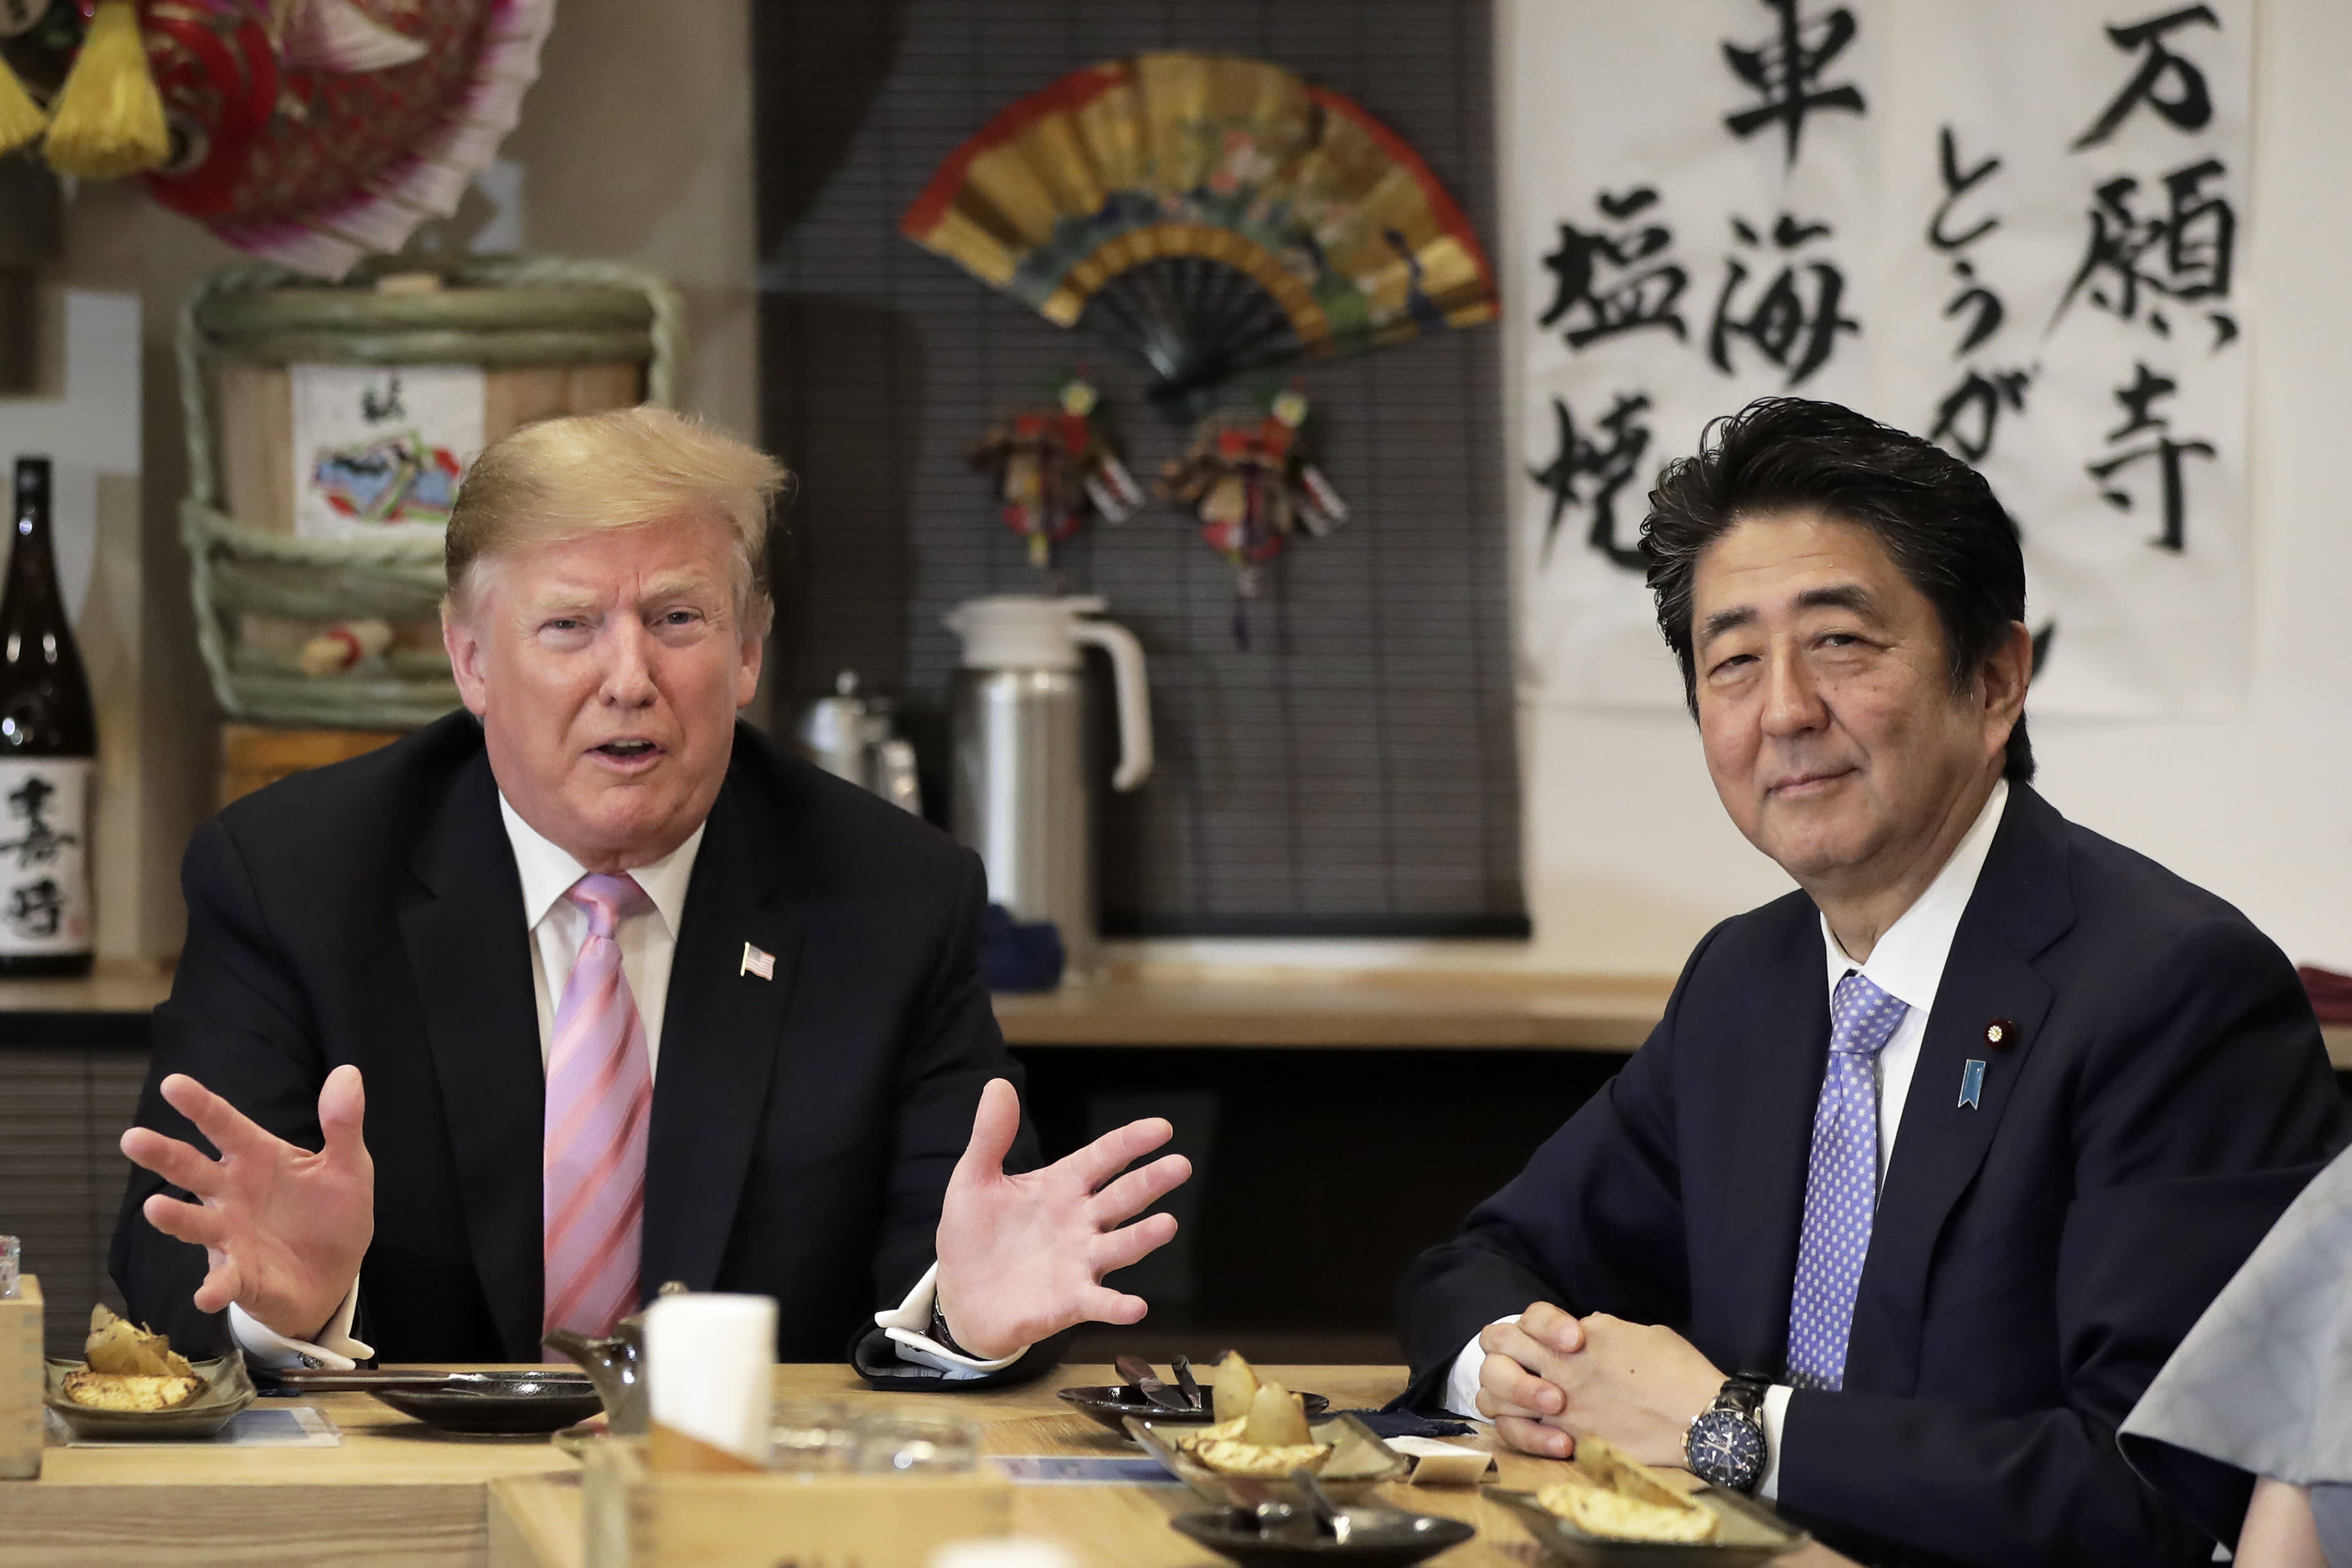 U.S. President Donald Trump, left, speaks as Shinzo Abe, Japan's prime minister, during a dinner at the Inakaya restaurant in the Roppongi district on May 26, 2019 in Tokyo, Japan.